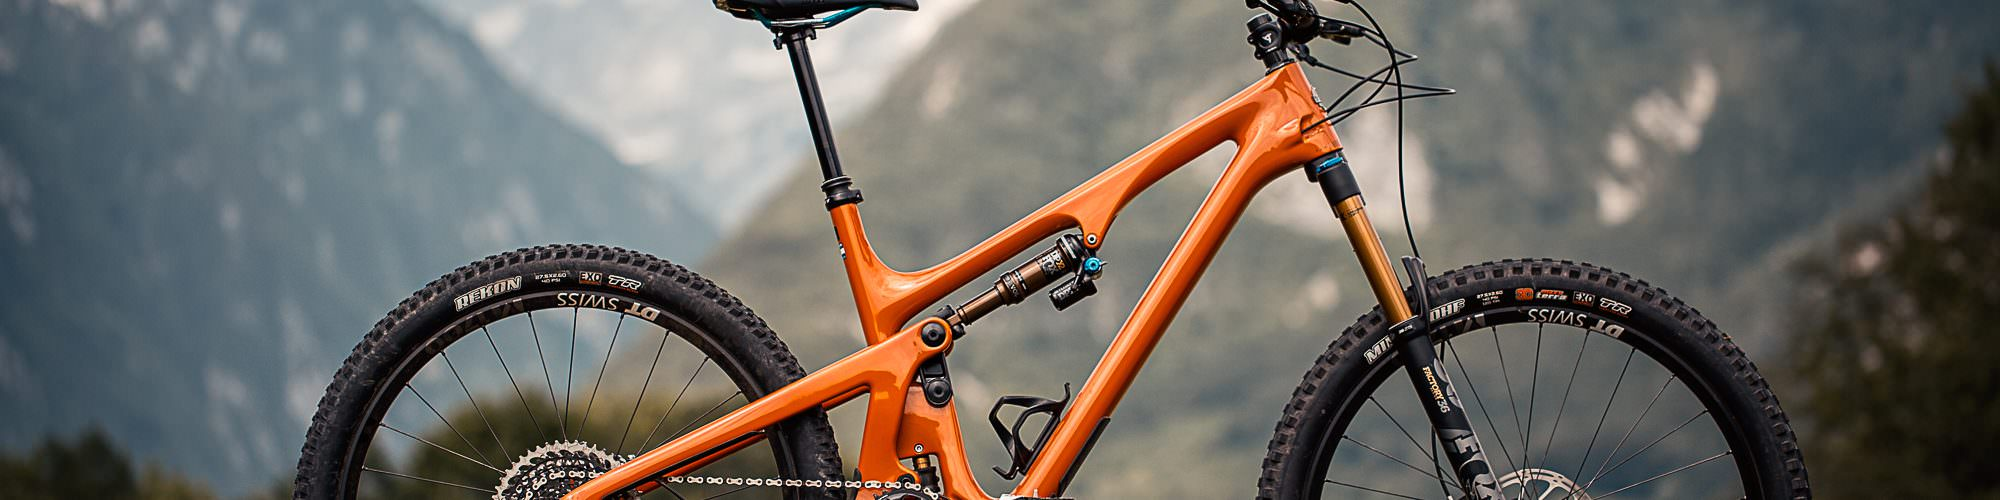 Yeti SB140 First Ride Review – Time To Rip | ENDURO